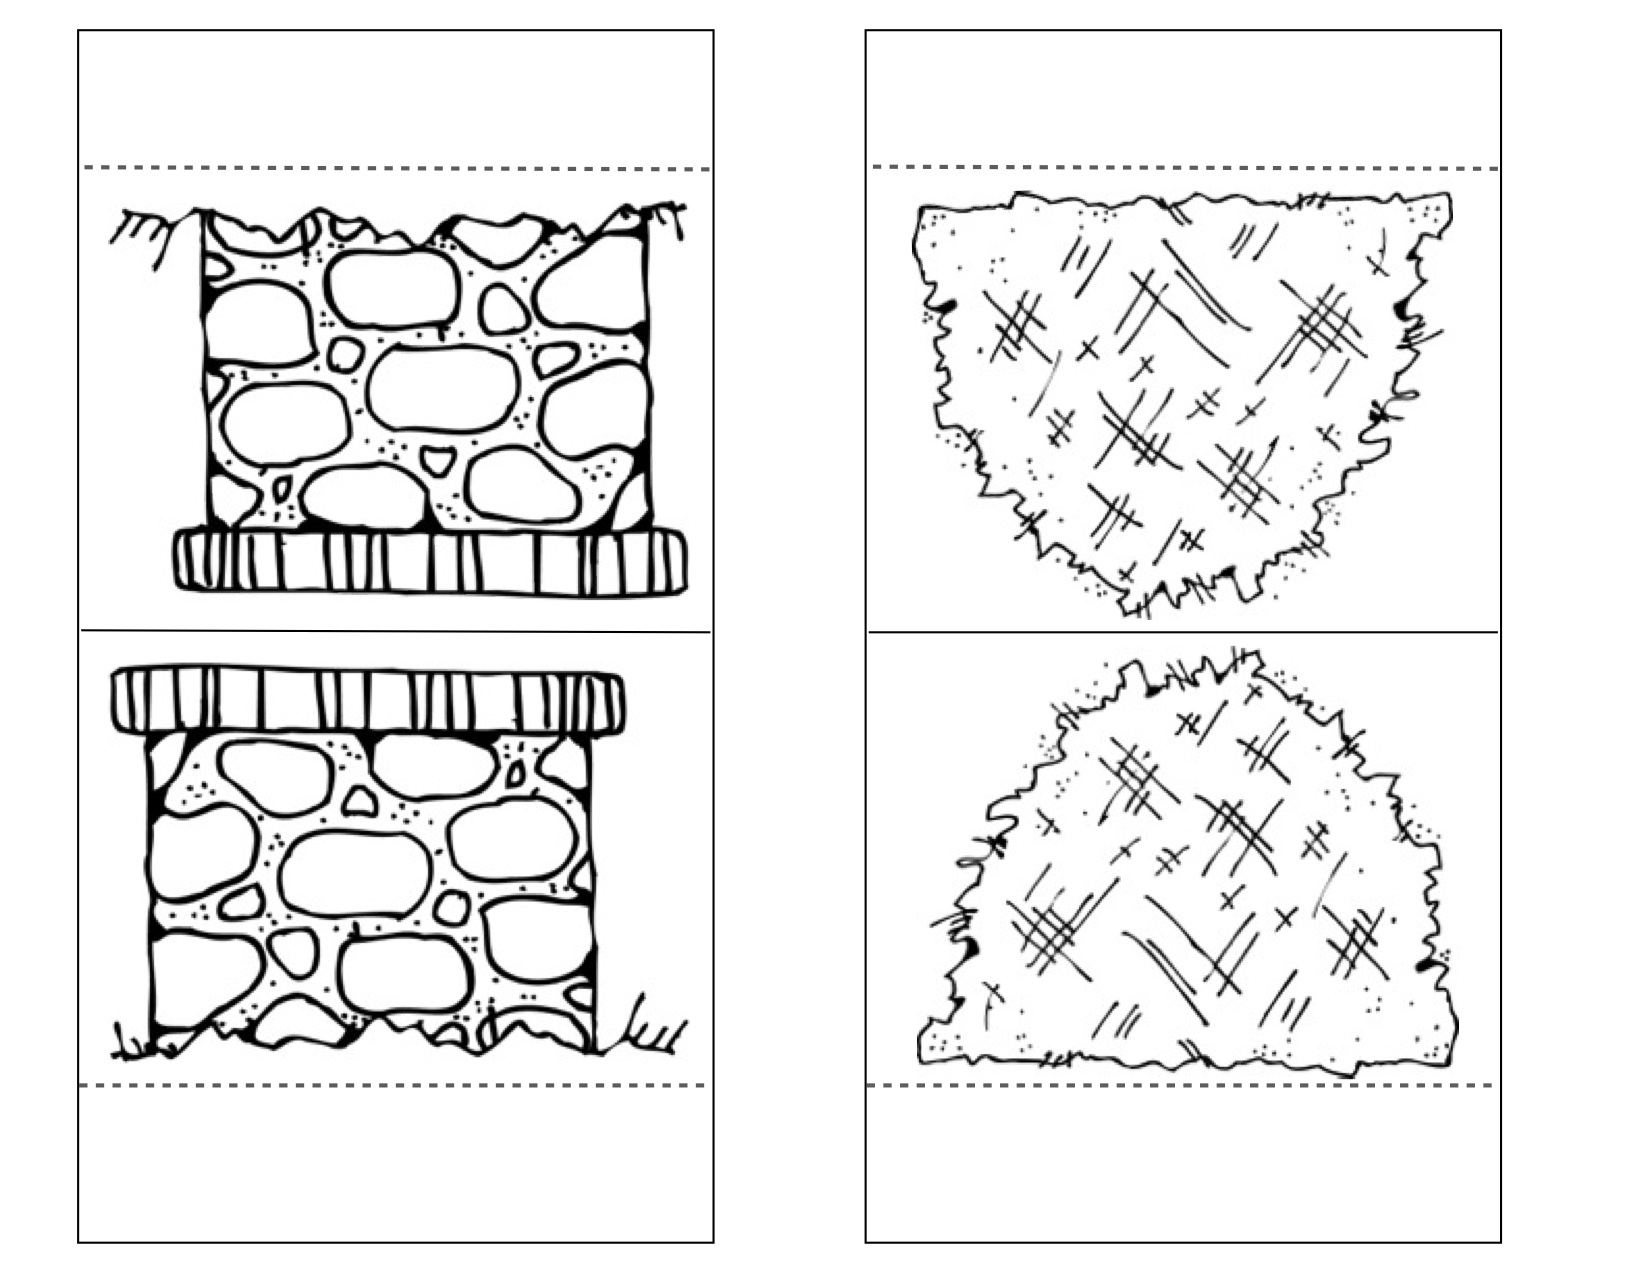 Haystack clipart black and white image transparent stock Free Haystack Cliparts, Download Free Clip Art, Free Clip Art on ... image transparent stock